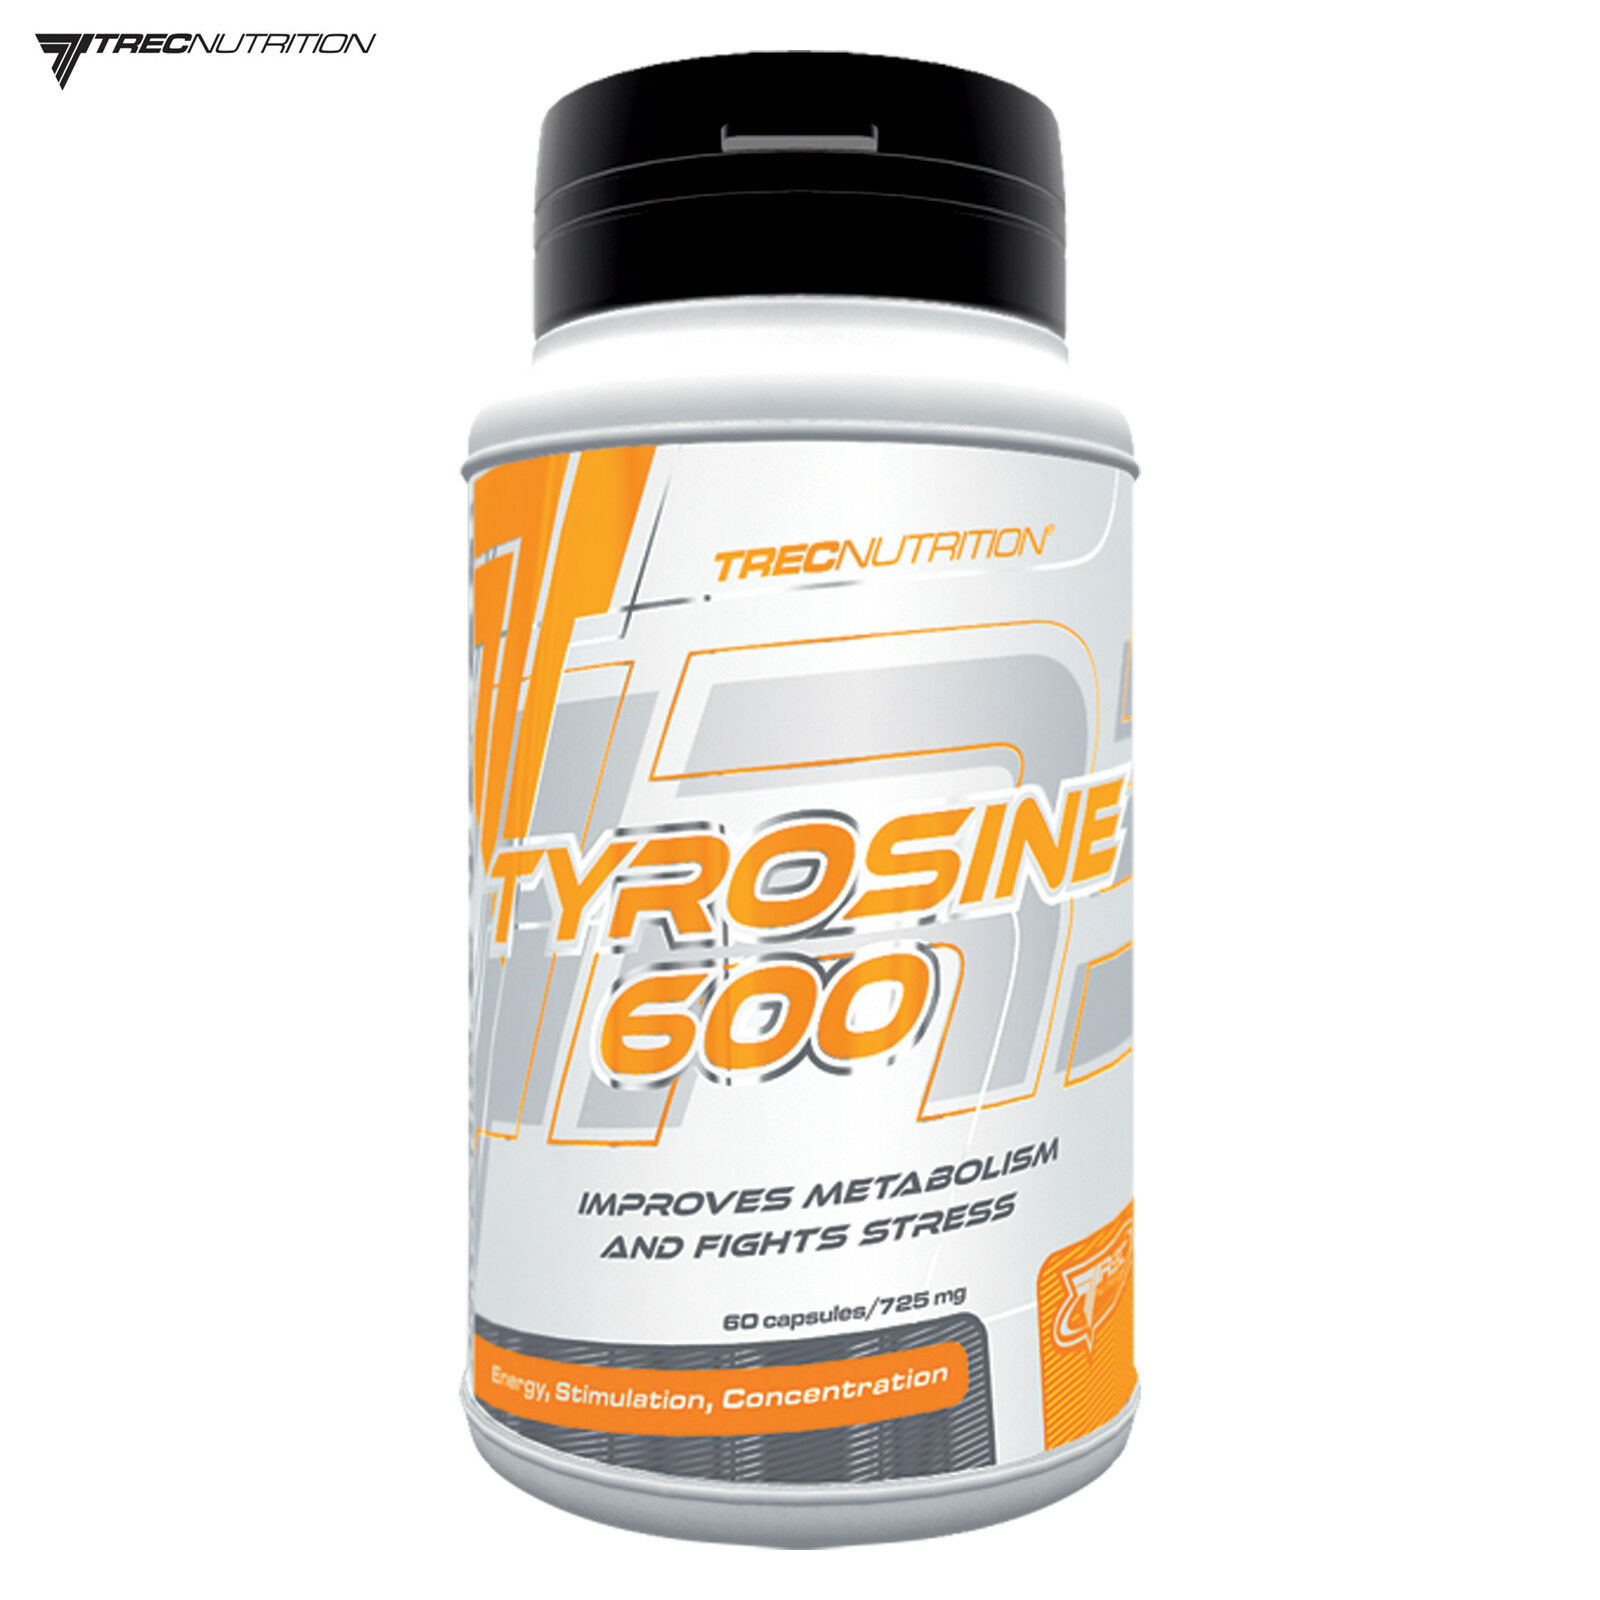 TYROSINE SUPPLEMENT Improves Physical And Mental Mental And Fitness & Resistance To Stress 3cc39b